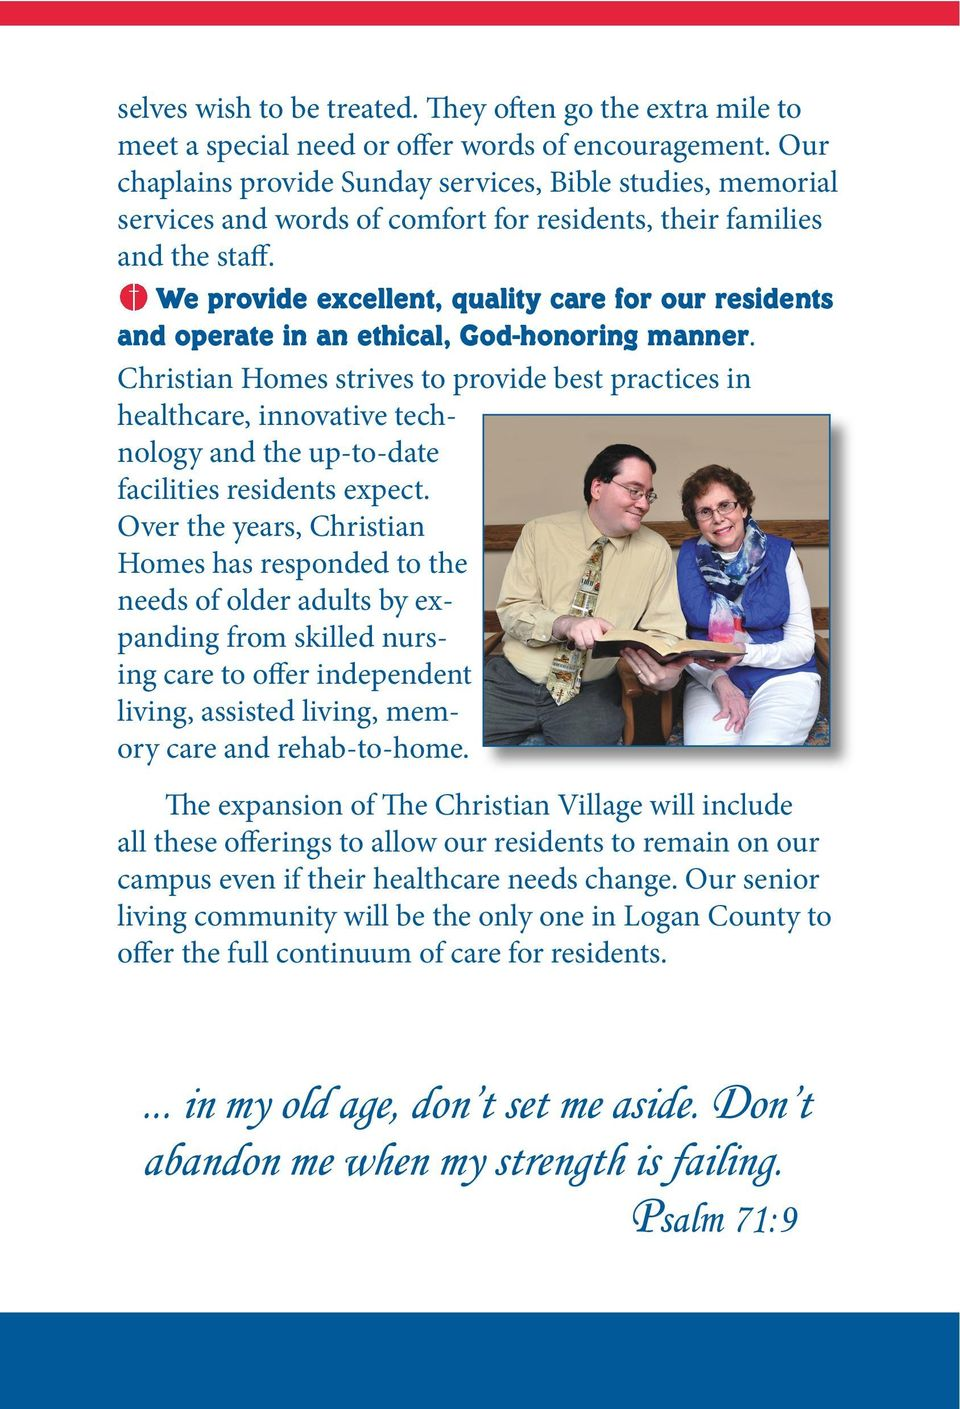 We provide excellent, quality care for our residents and operate in an ethical, God-honoring manner.